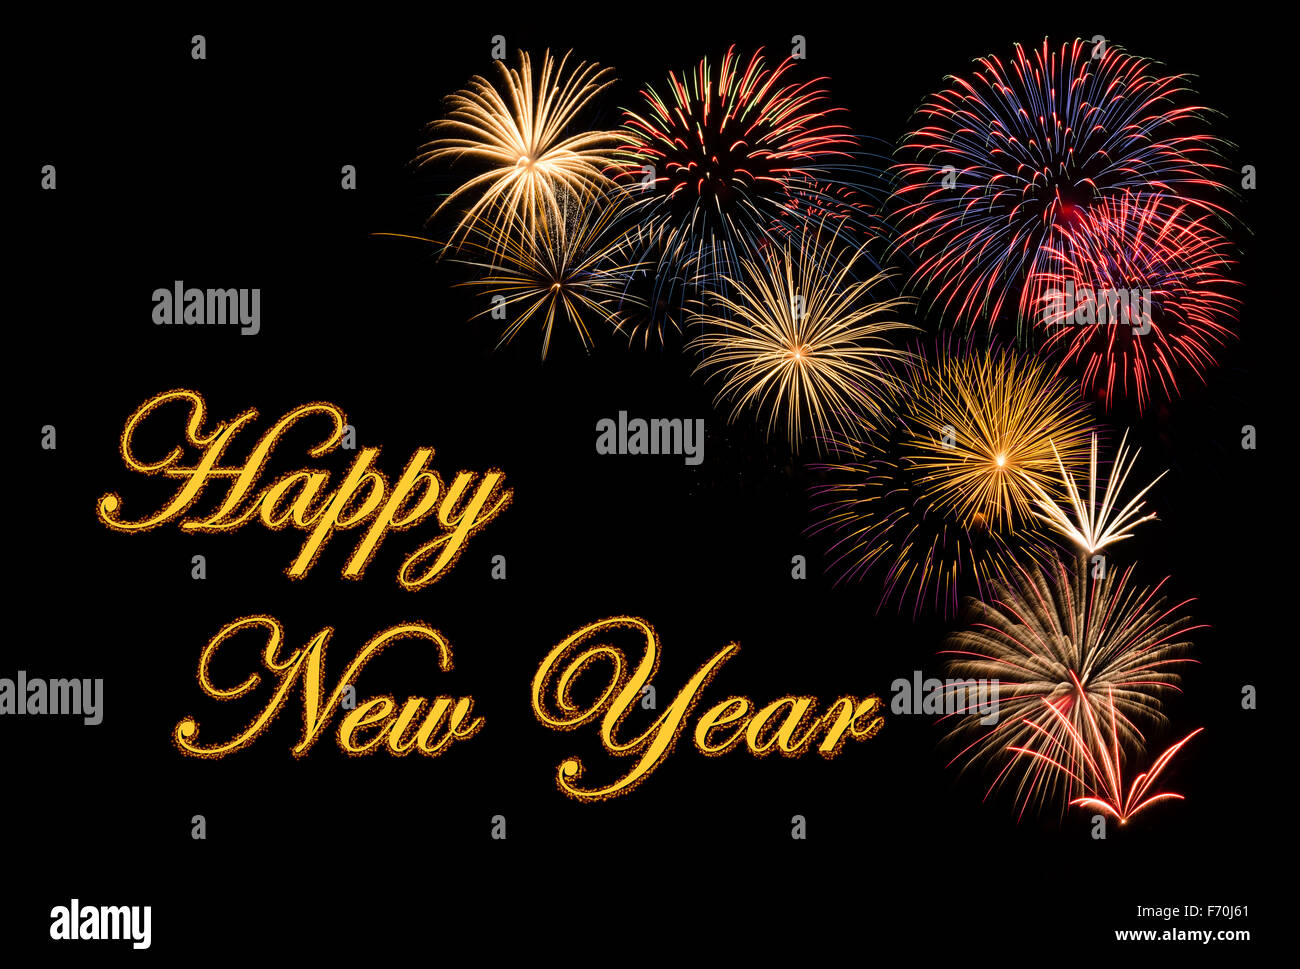 festive fireworks display for a happy new year wishes stock image